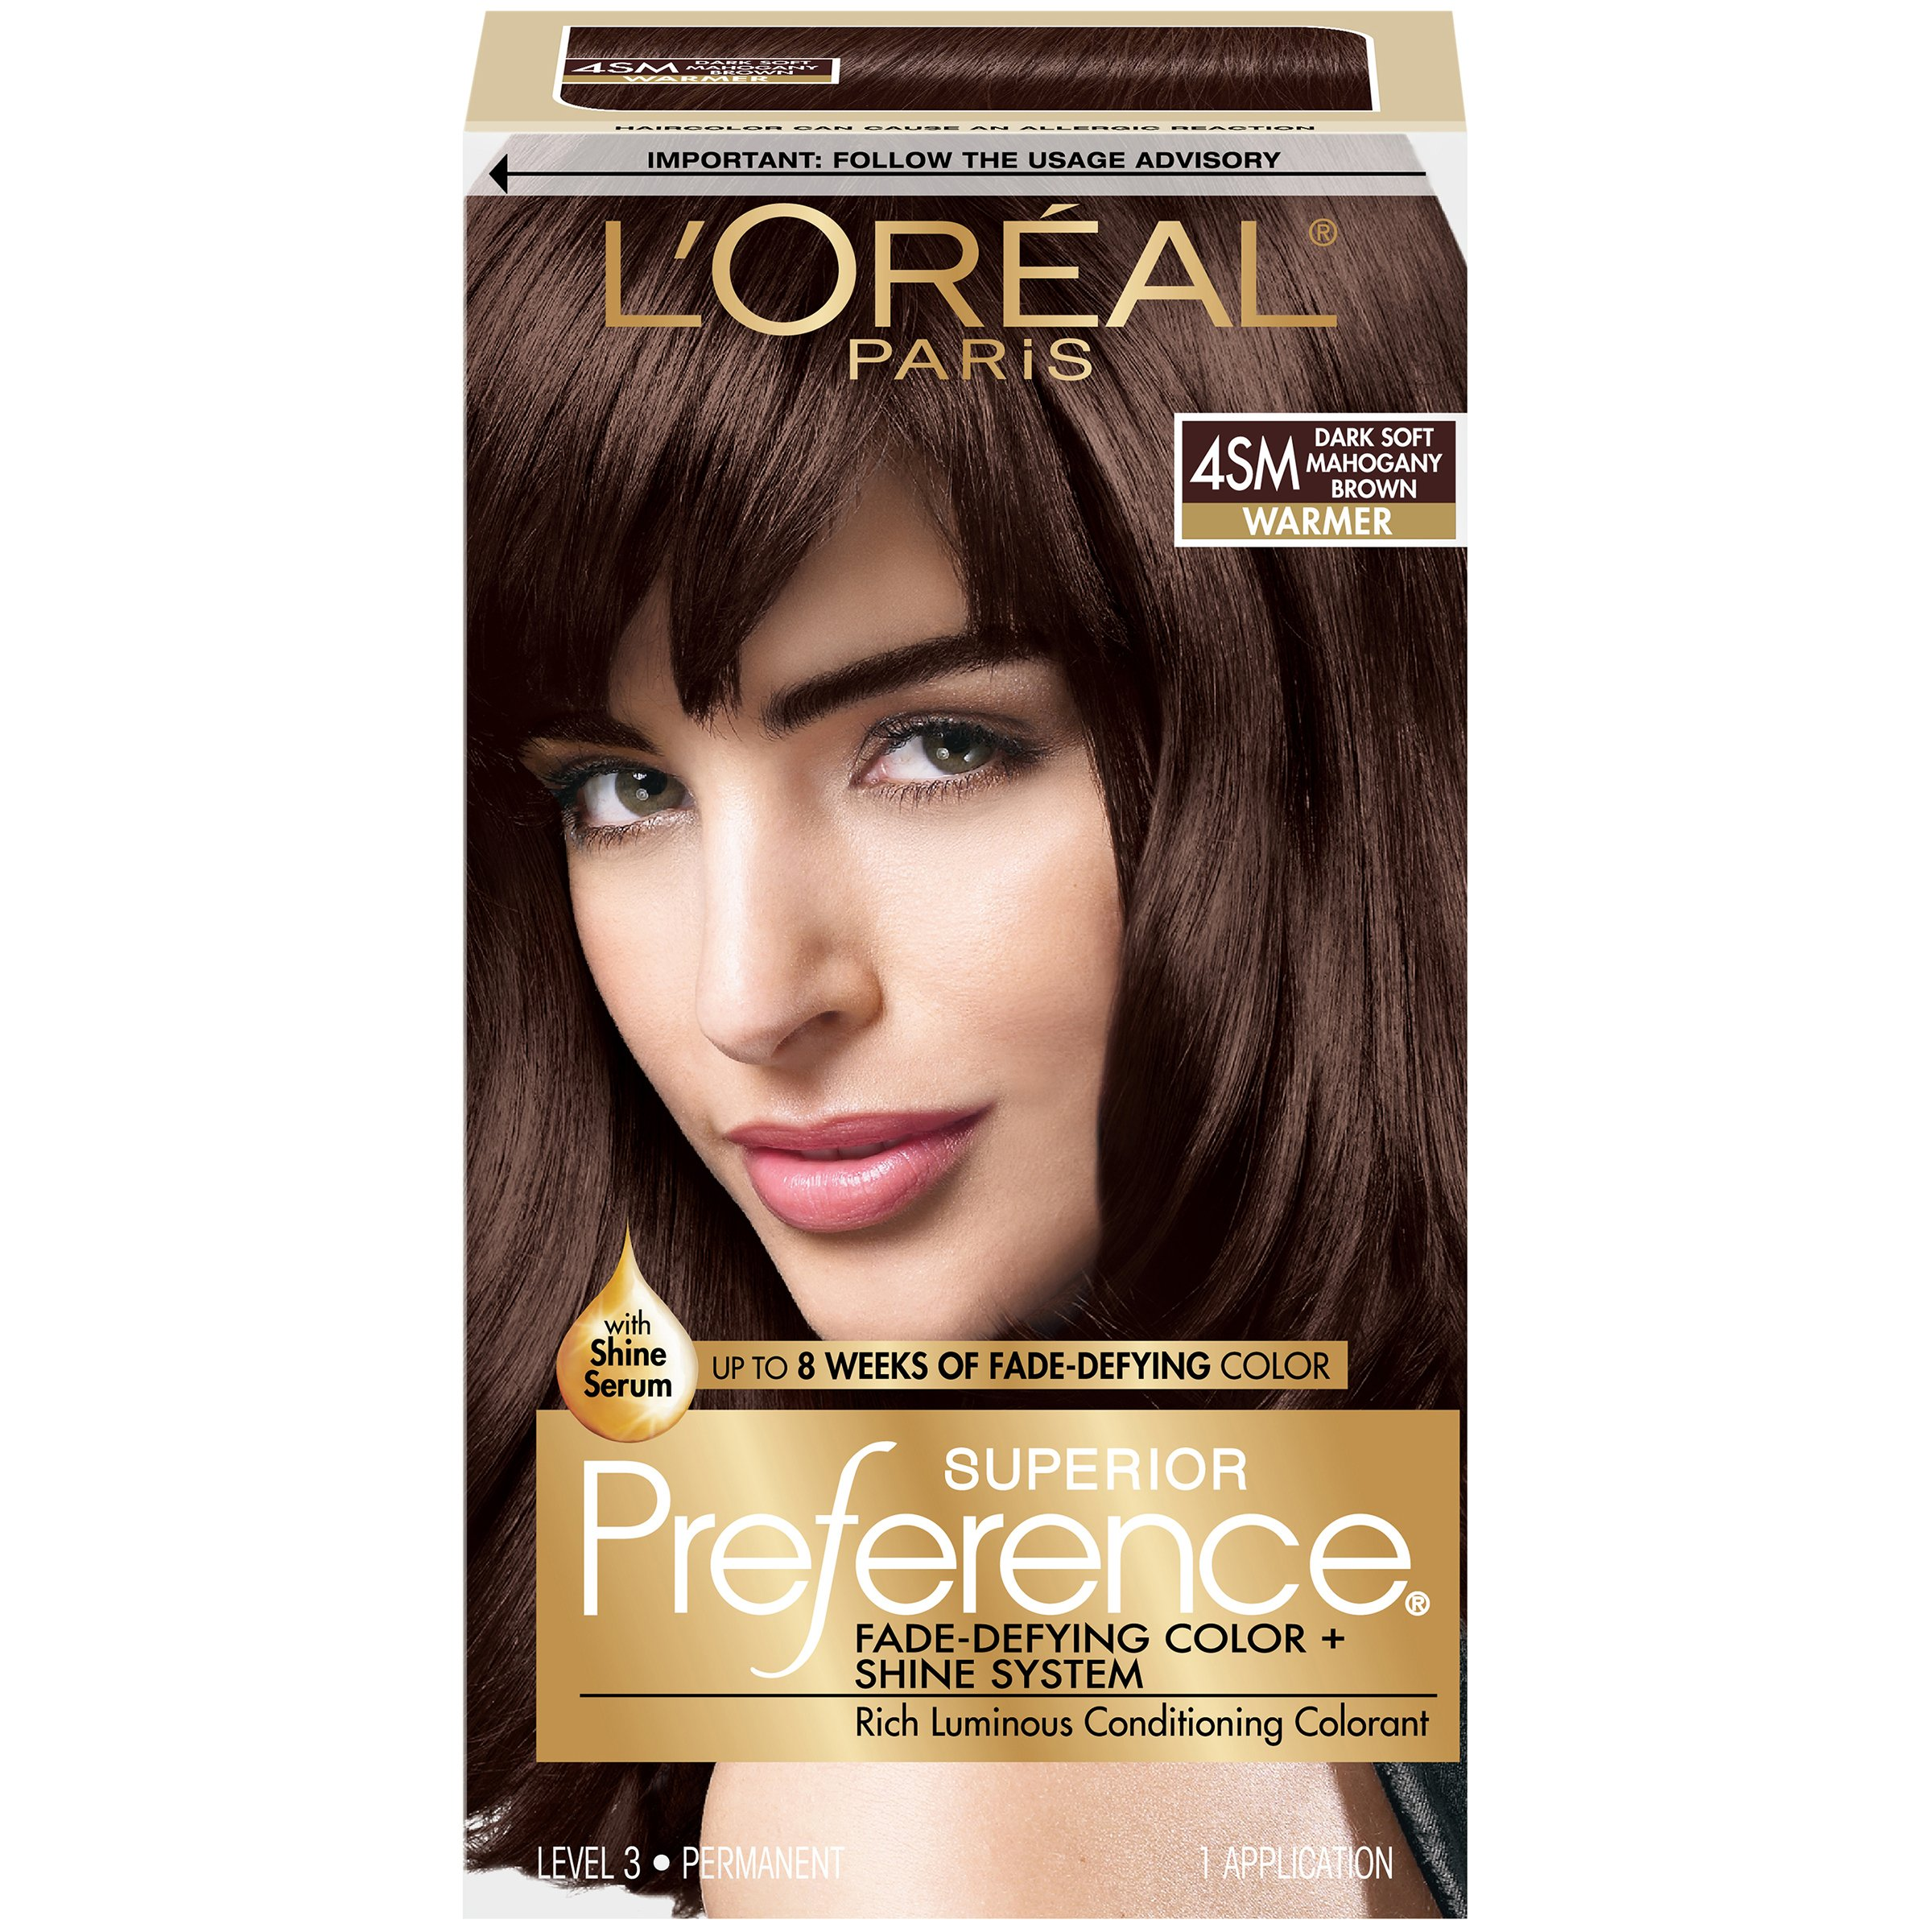 amazoncom loreal superior preference 4sm dark soft